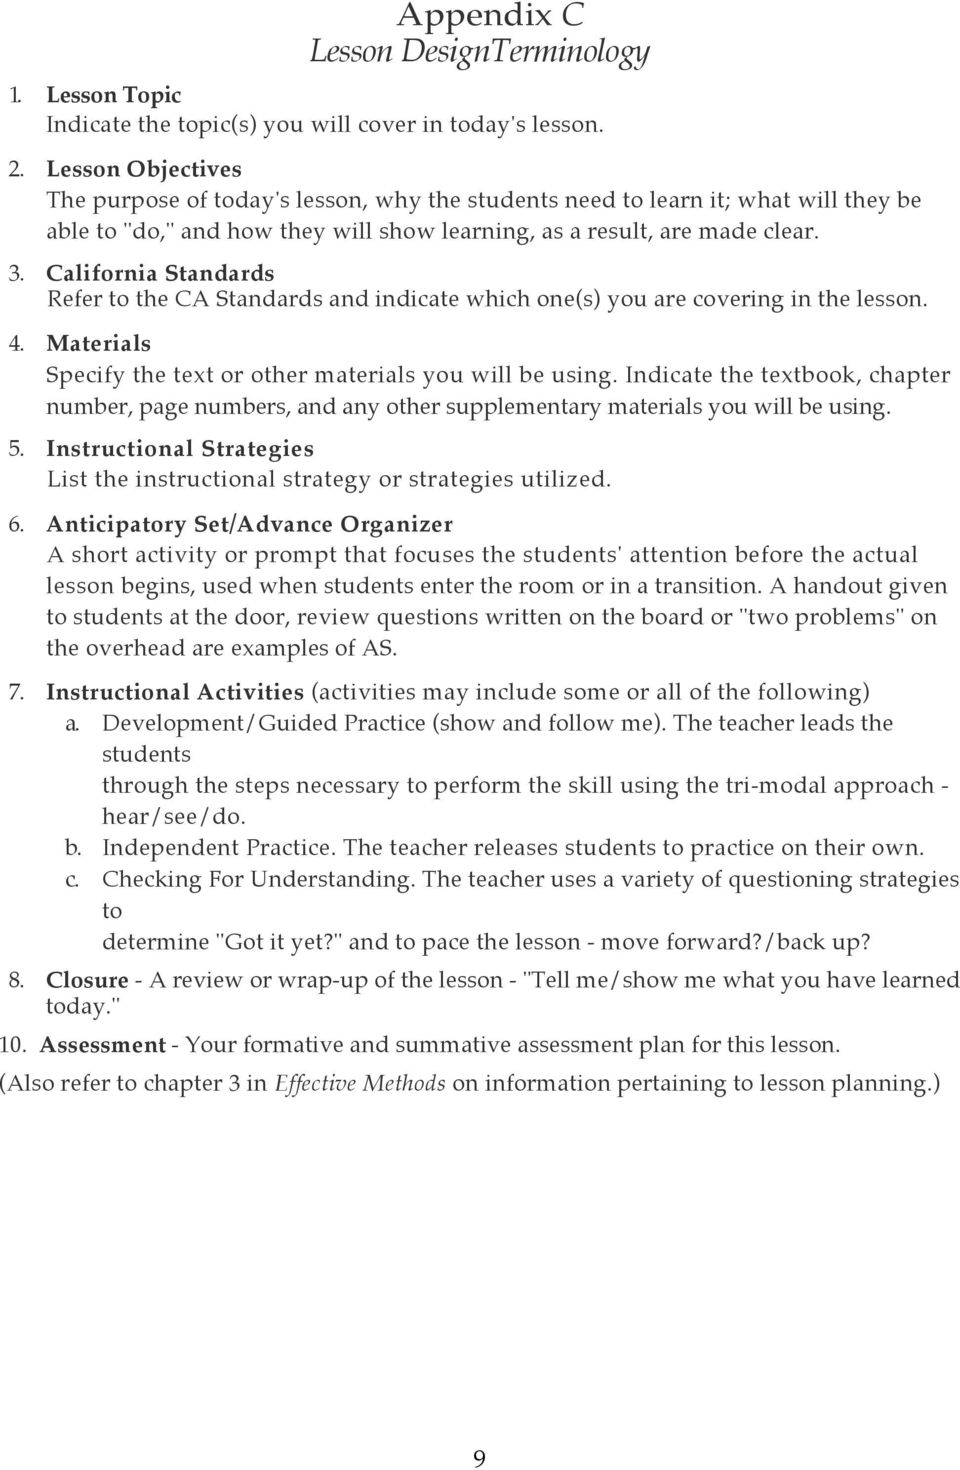 California Standards Refer to the CA Standards and indicate which one(s) you are covering in the lesson. 4. Materials Specify the text or other materials you will be using.